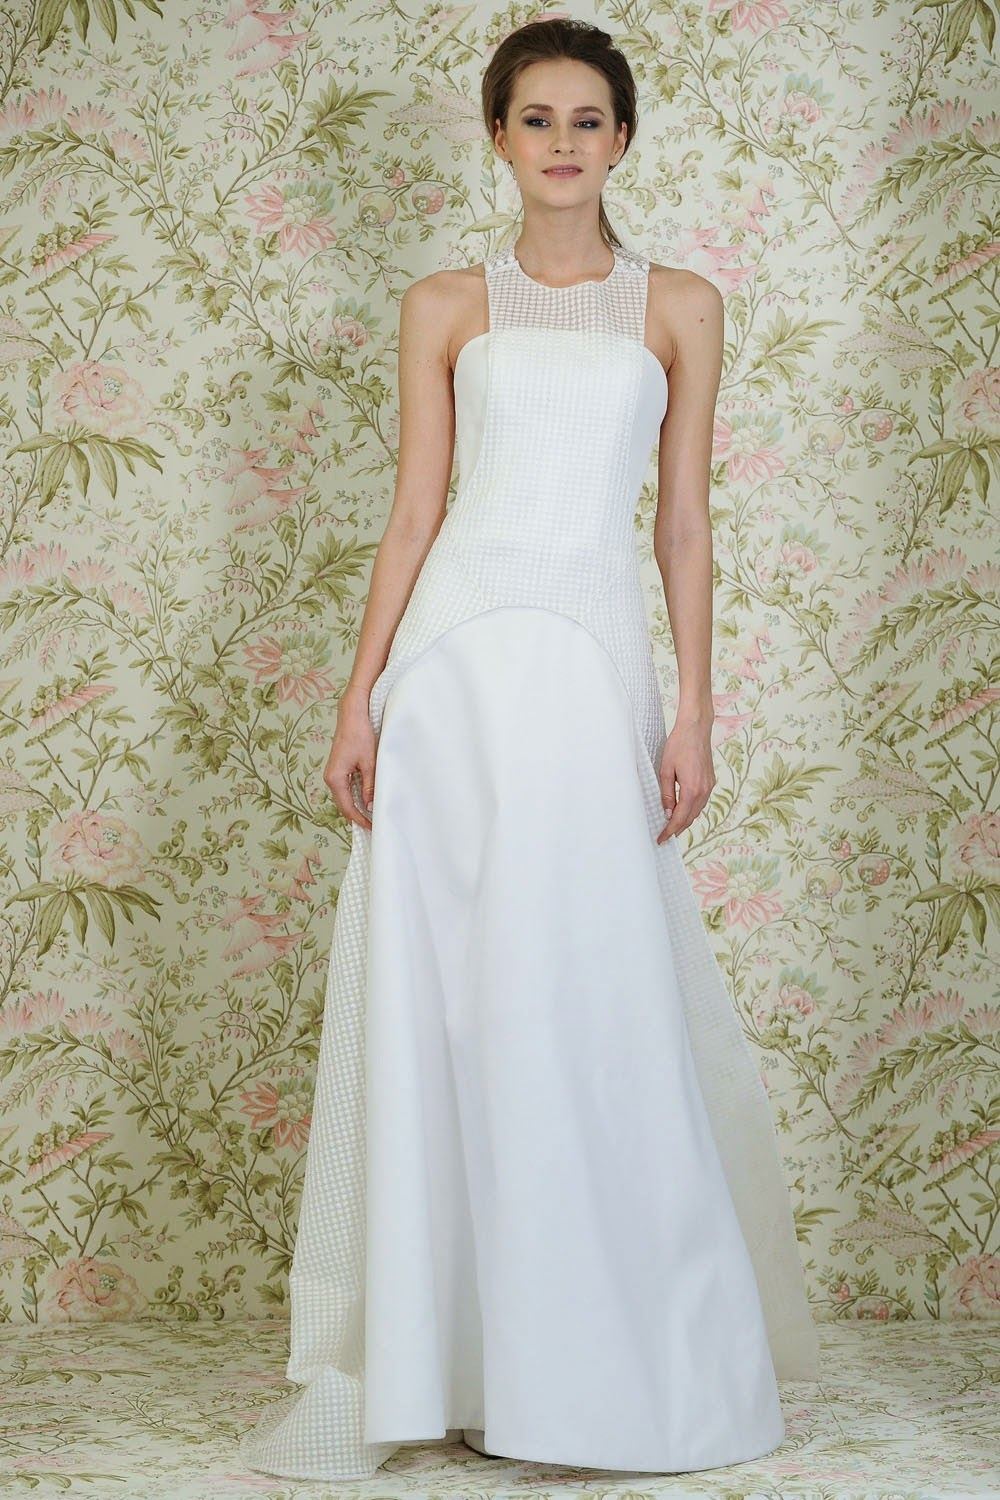 Angel sanchez spring 2015 wedding dresses world of bridal angel sanchez spring 2015 wedding dresses ombrellifo Image collections